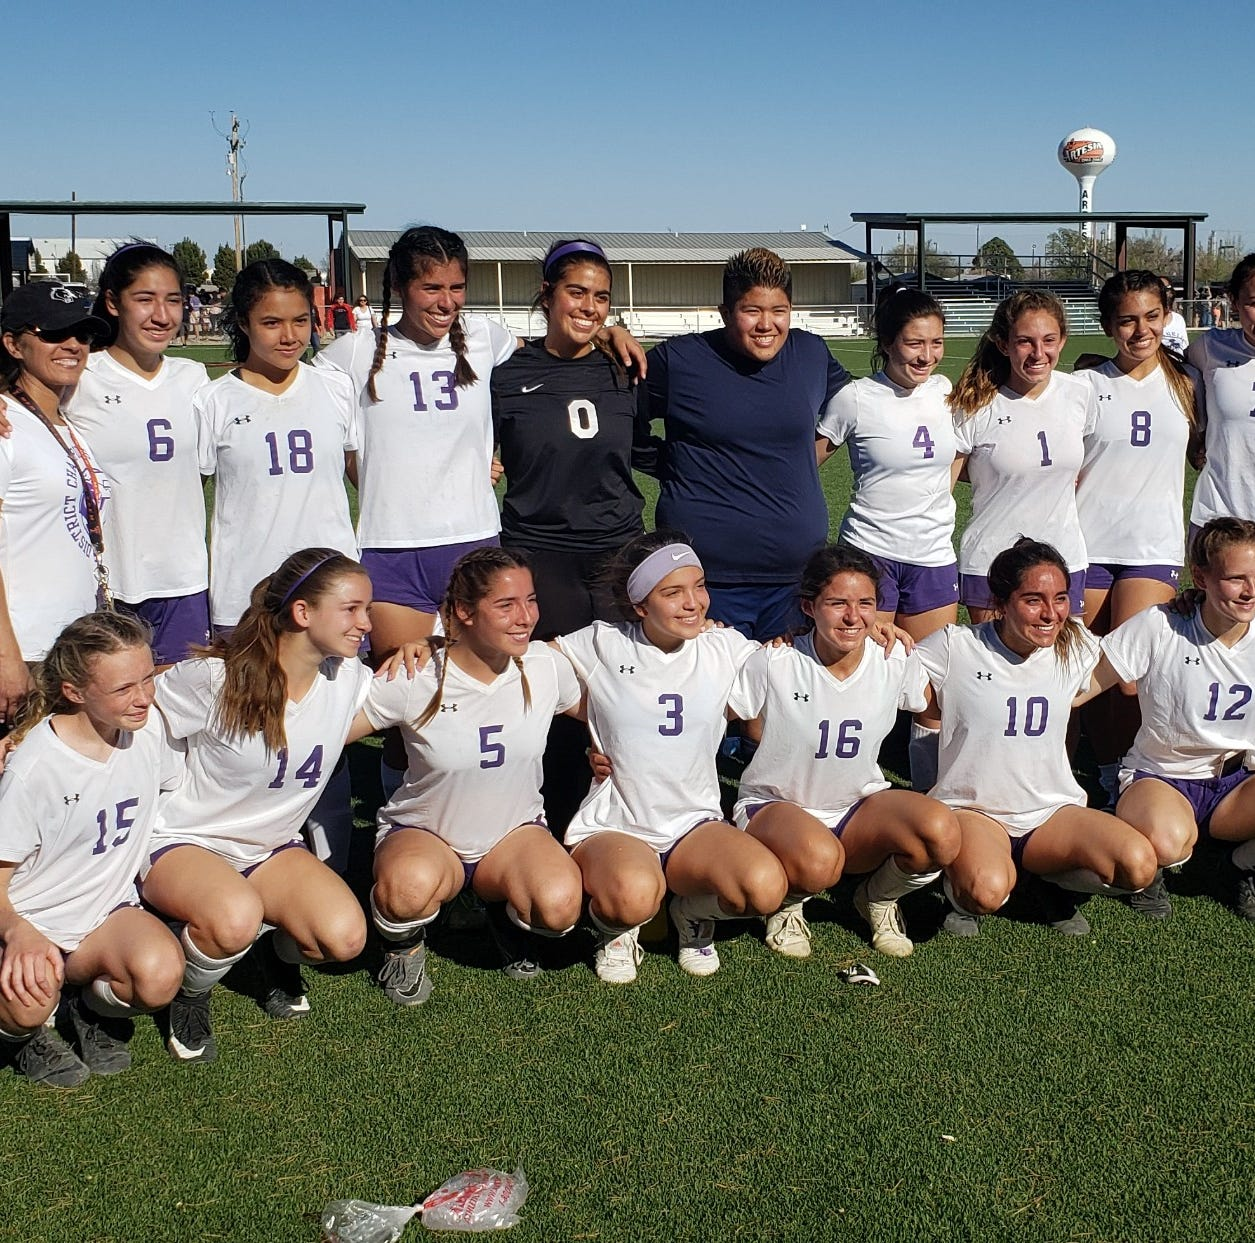 The Franklin girls soccer team won its Class 6A bidistrict playoff match on Friday in Artesia with a 1-0 win vs. Midland high.